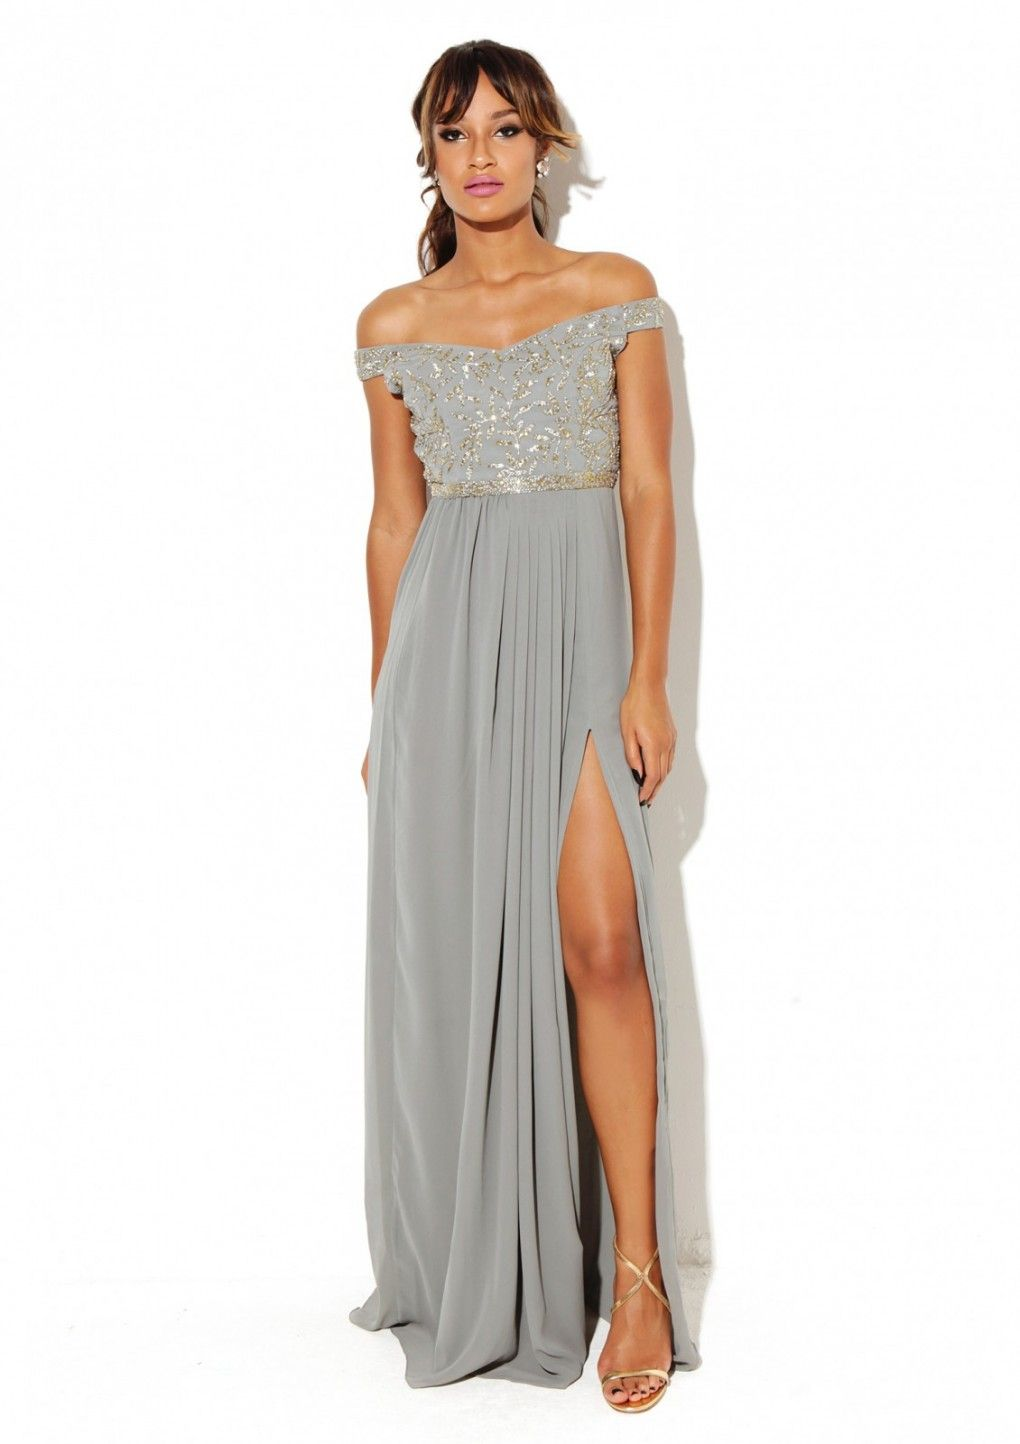 Juliana dress grey virgos lounge whatus the occasion